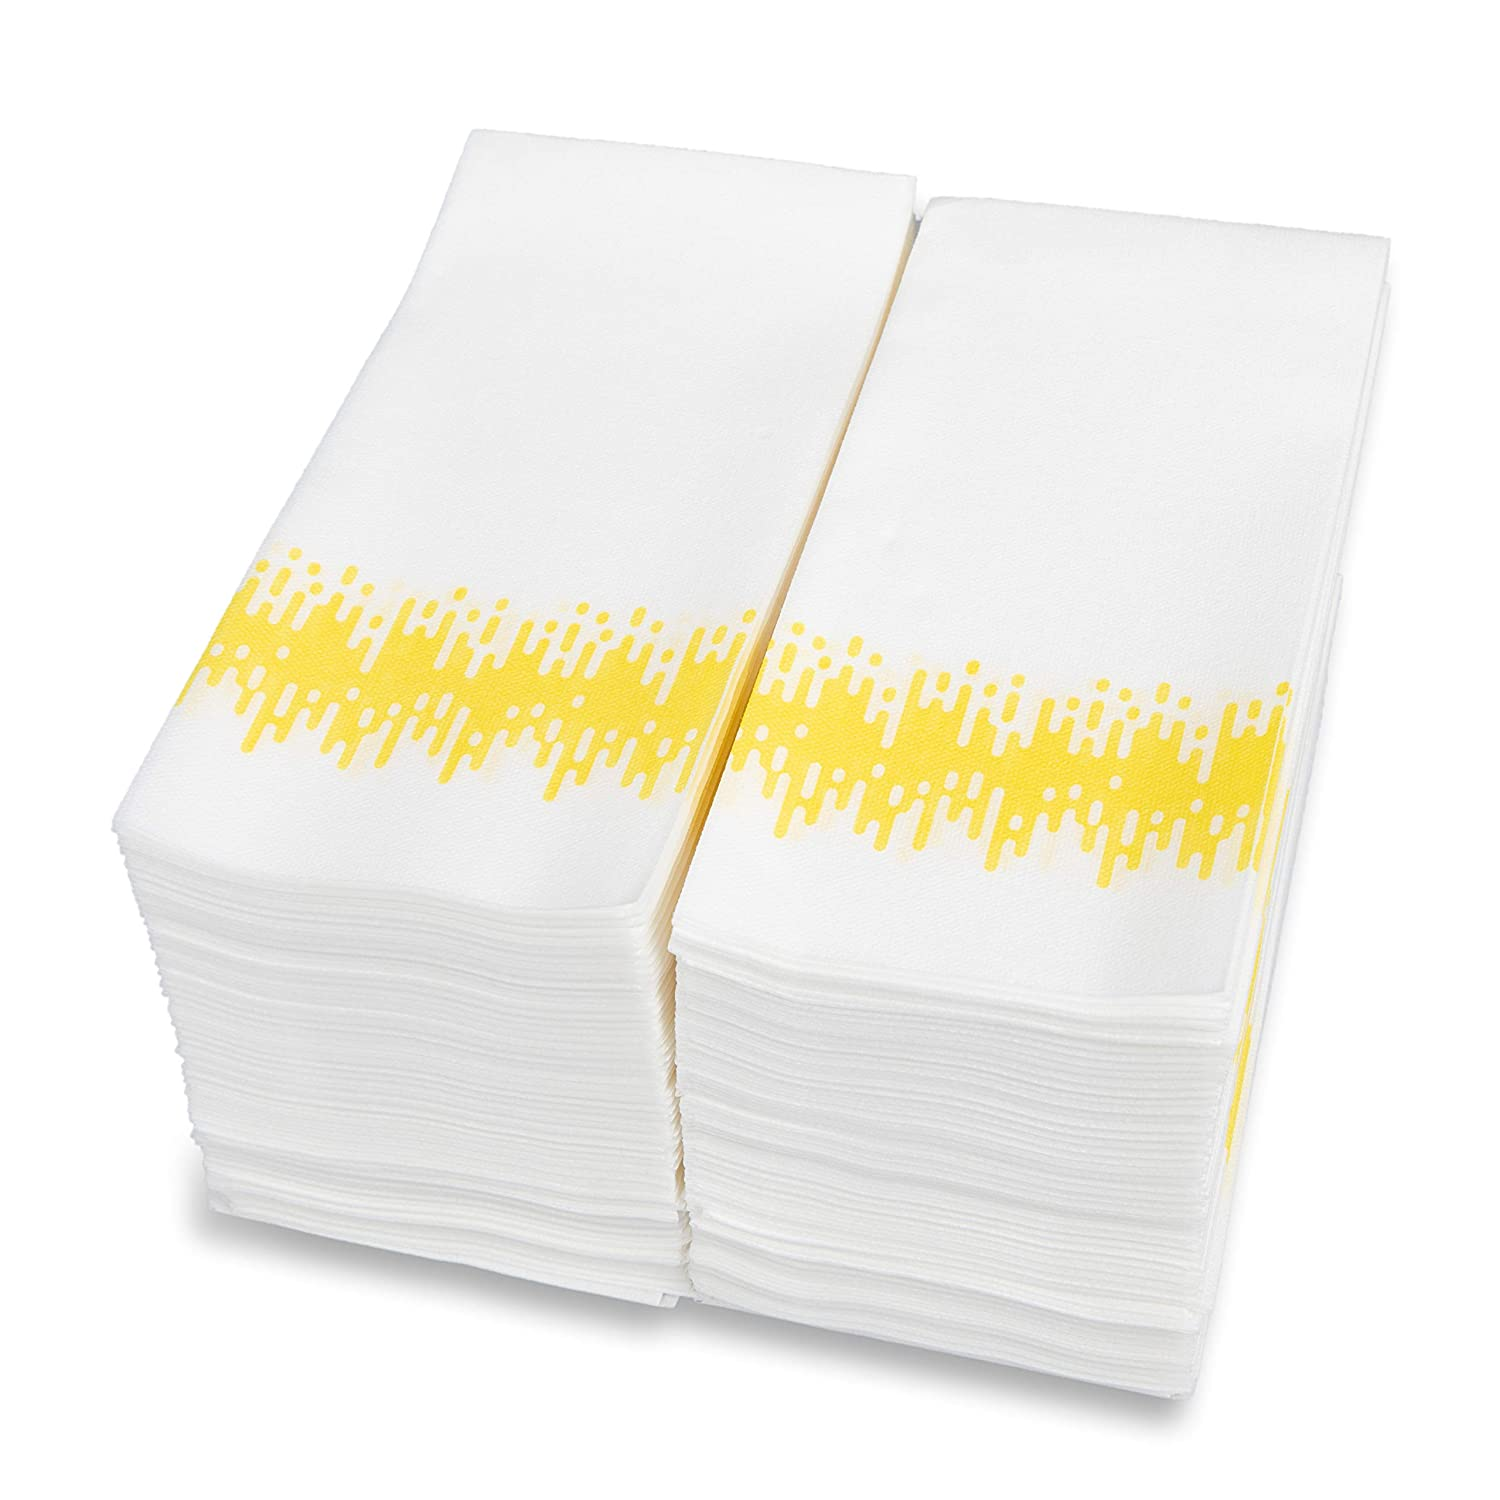 Image of Disposable Hand Towels, Pack of 100